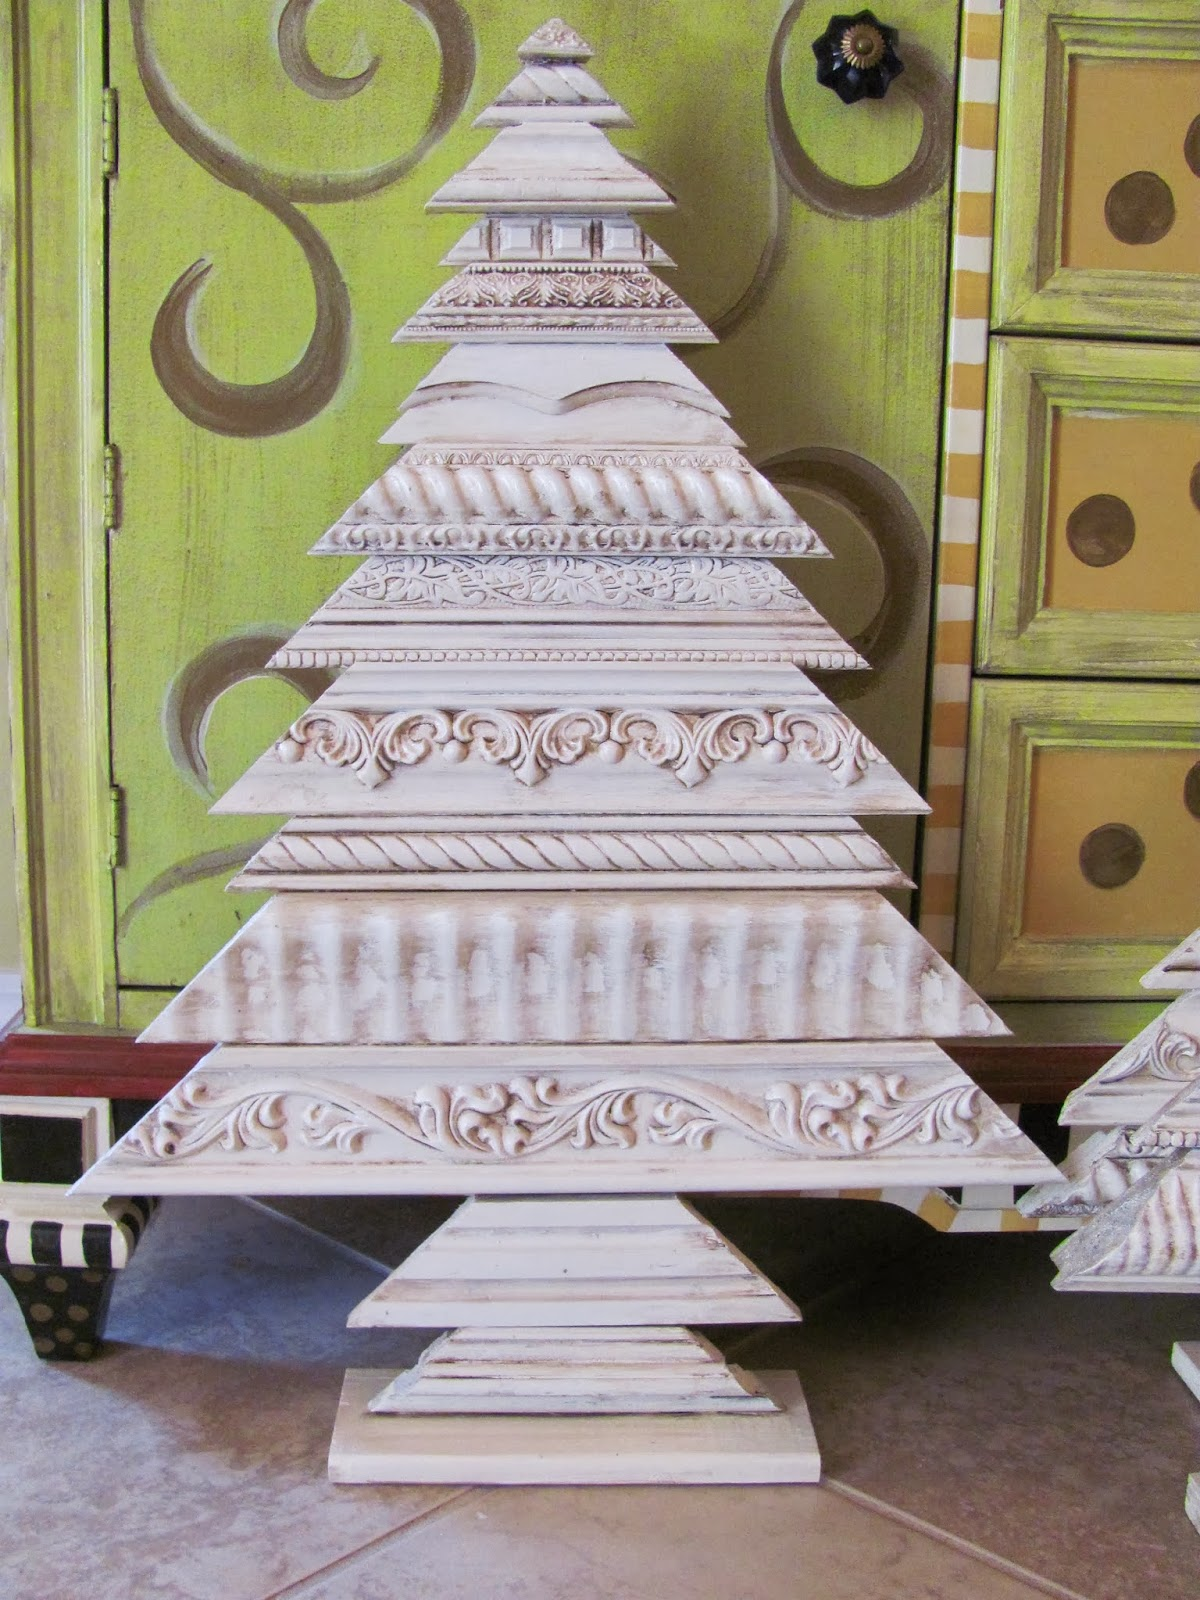 christmas tree made from picture and decorative molding